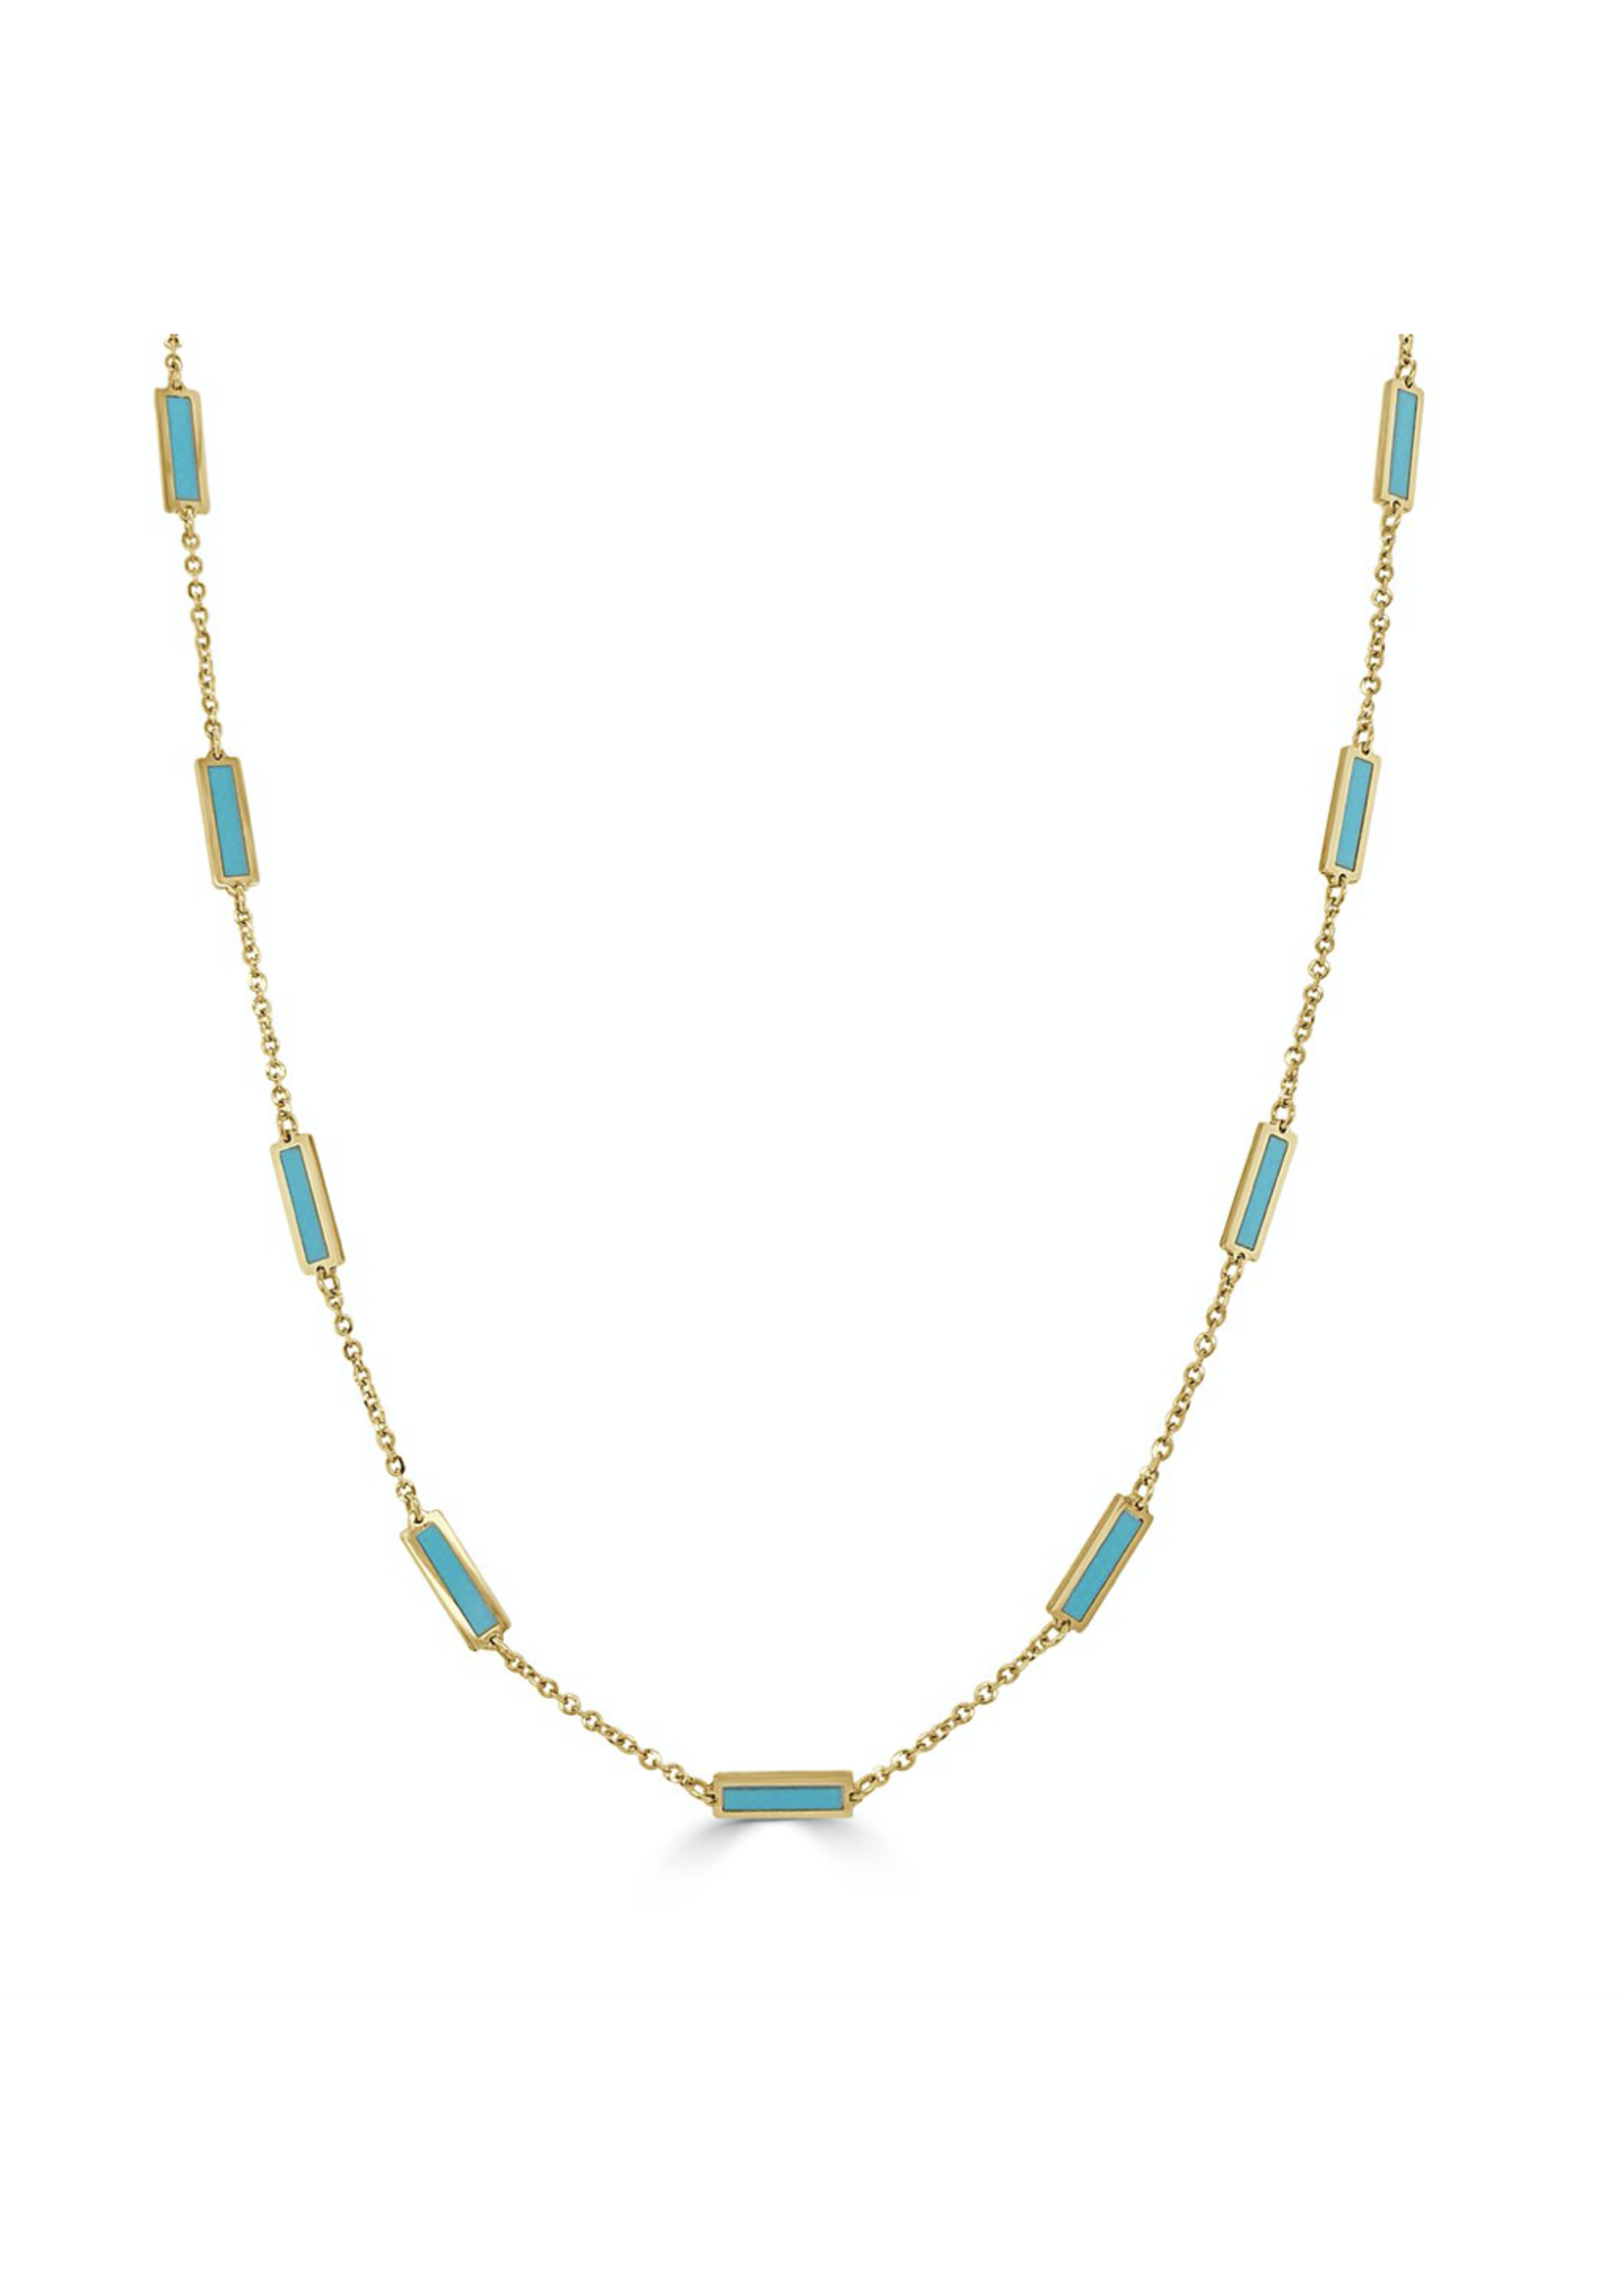 Jill Alberts Turquoise Station Necklace